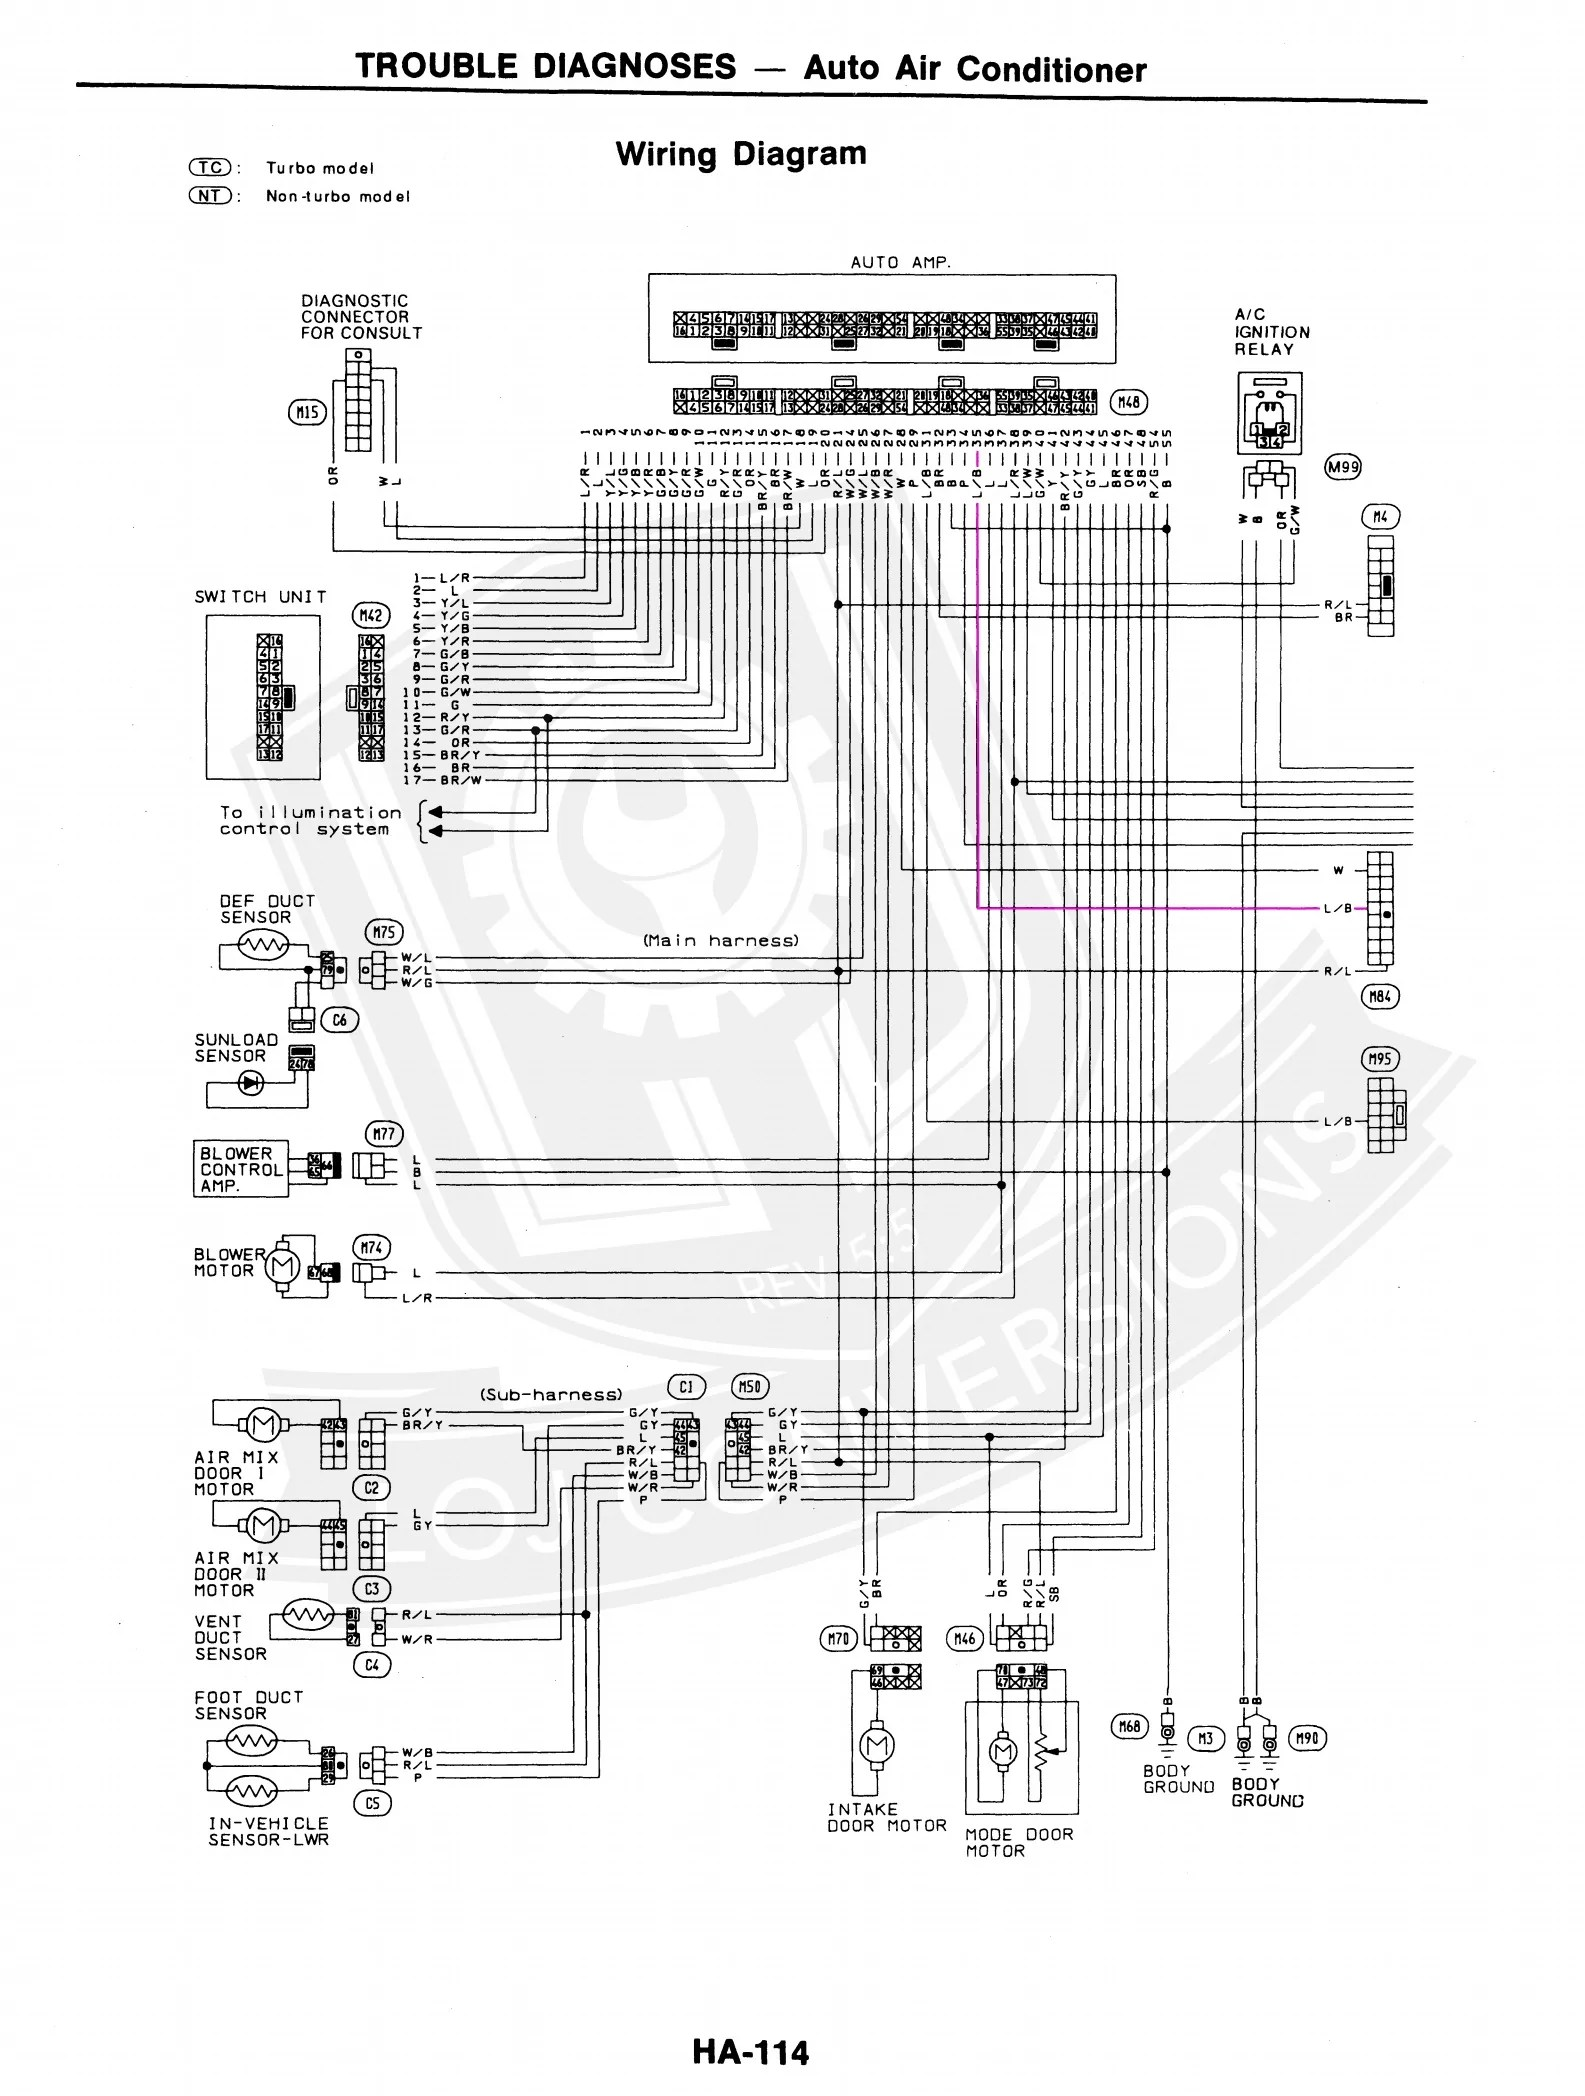 medium resolution of 1992 300zx wiring diagram wiring diagram sheet nissan